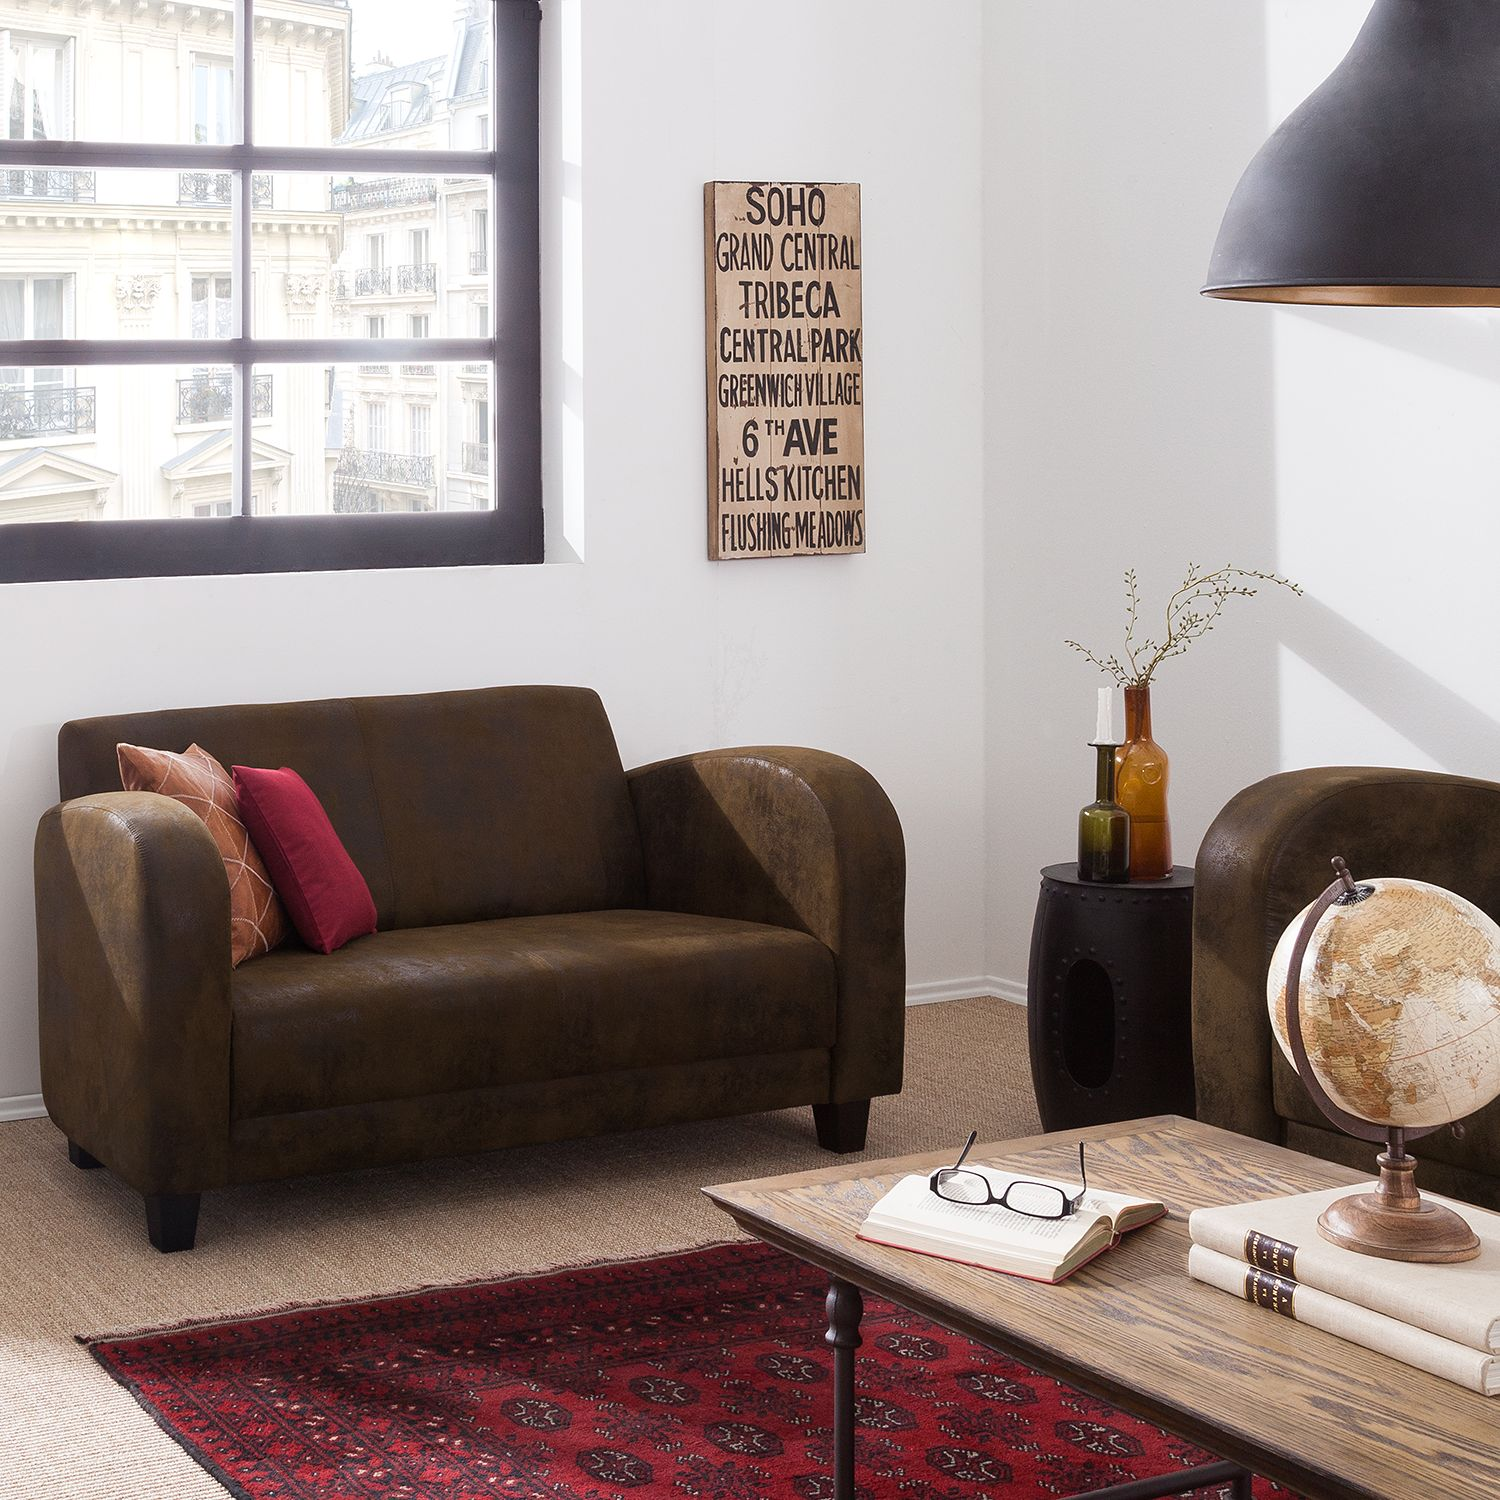 Schlafzimmer Set Tollow Sofa Tullow 2 Sitzer